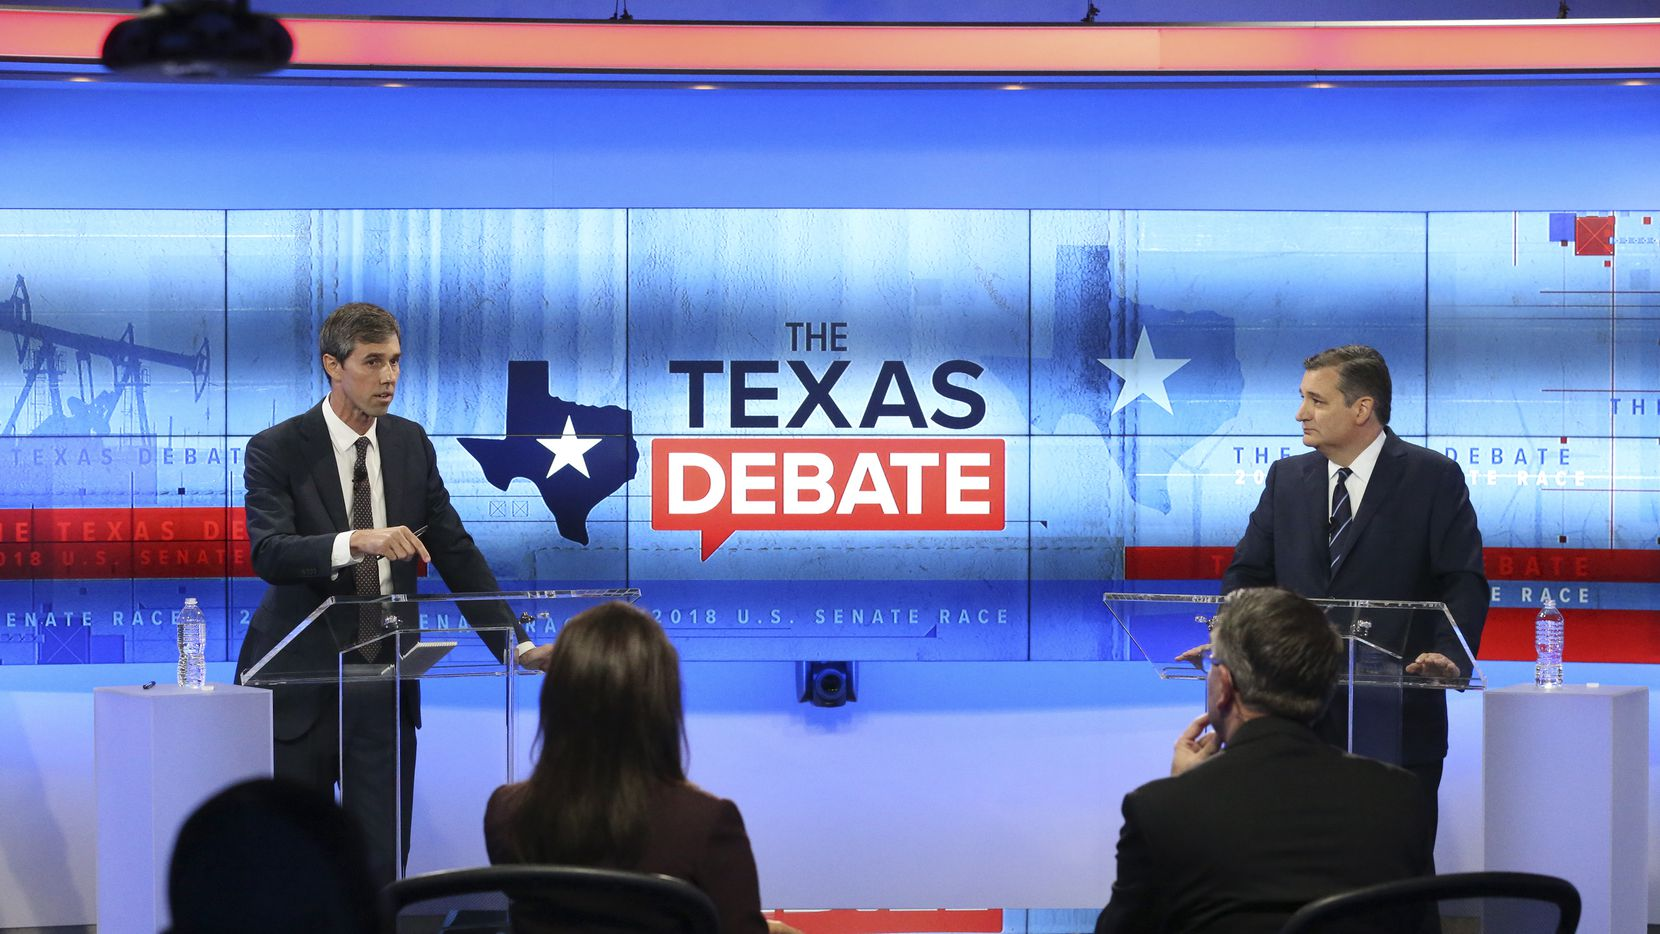 SAN ANTONIO, TX - OCTOBER 15:  U.S. Rep. Beto O'Rourke (D-TX) (L) and U.S. Sen. Ted Cruz (R-TX) face off in a debate at the KENS 5 studios on October 16, 2018 in San Antonio, Texas. A recent poll show Cruz leading O'Rourke 52-45 percent among likely voters.